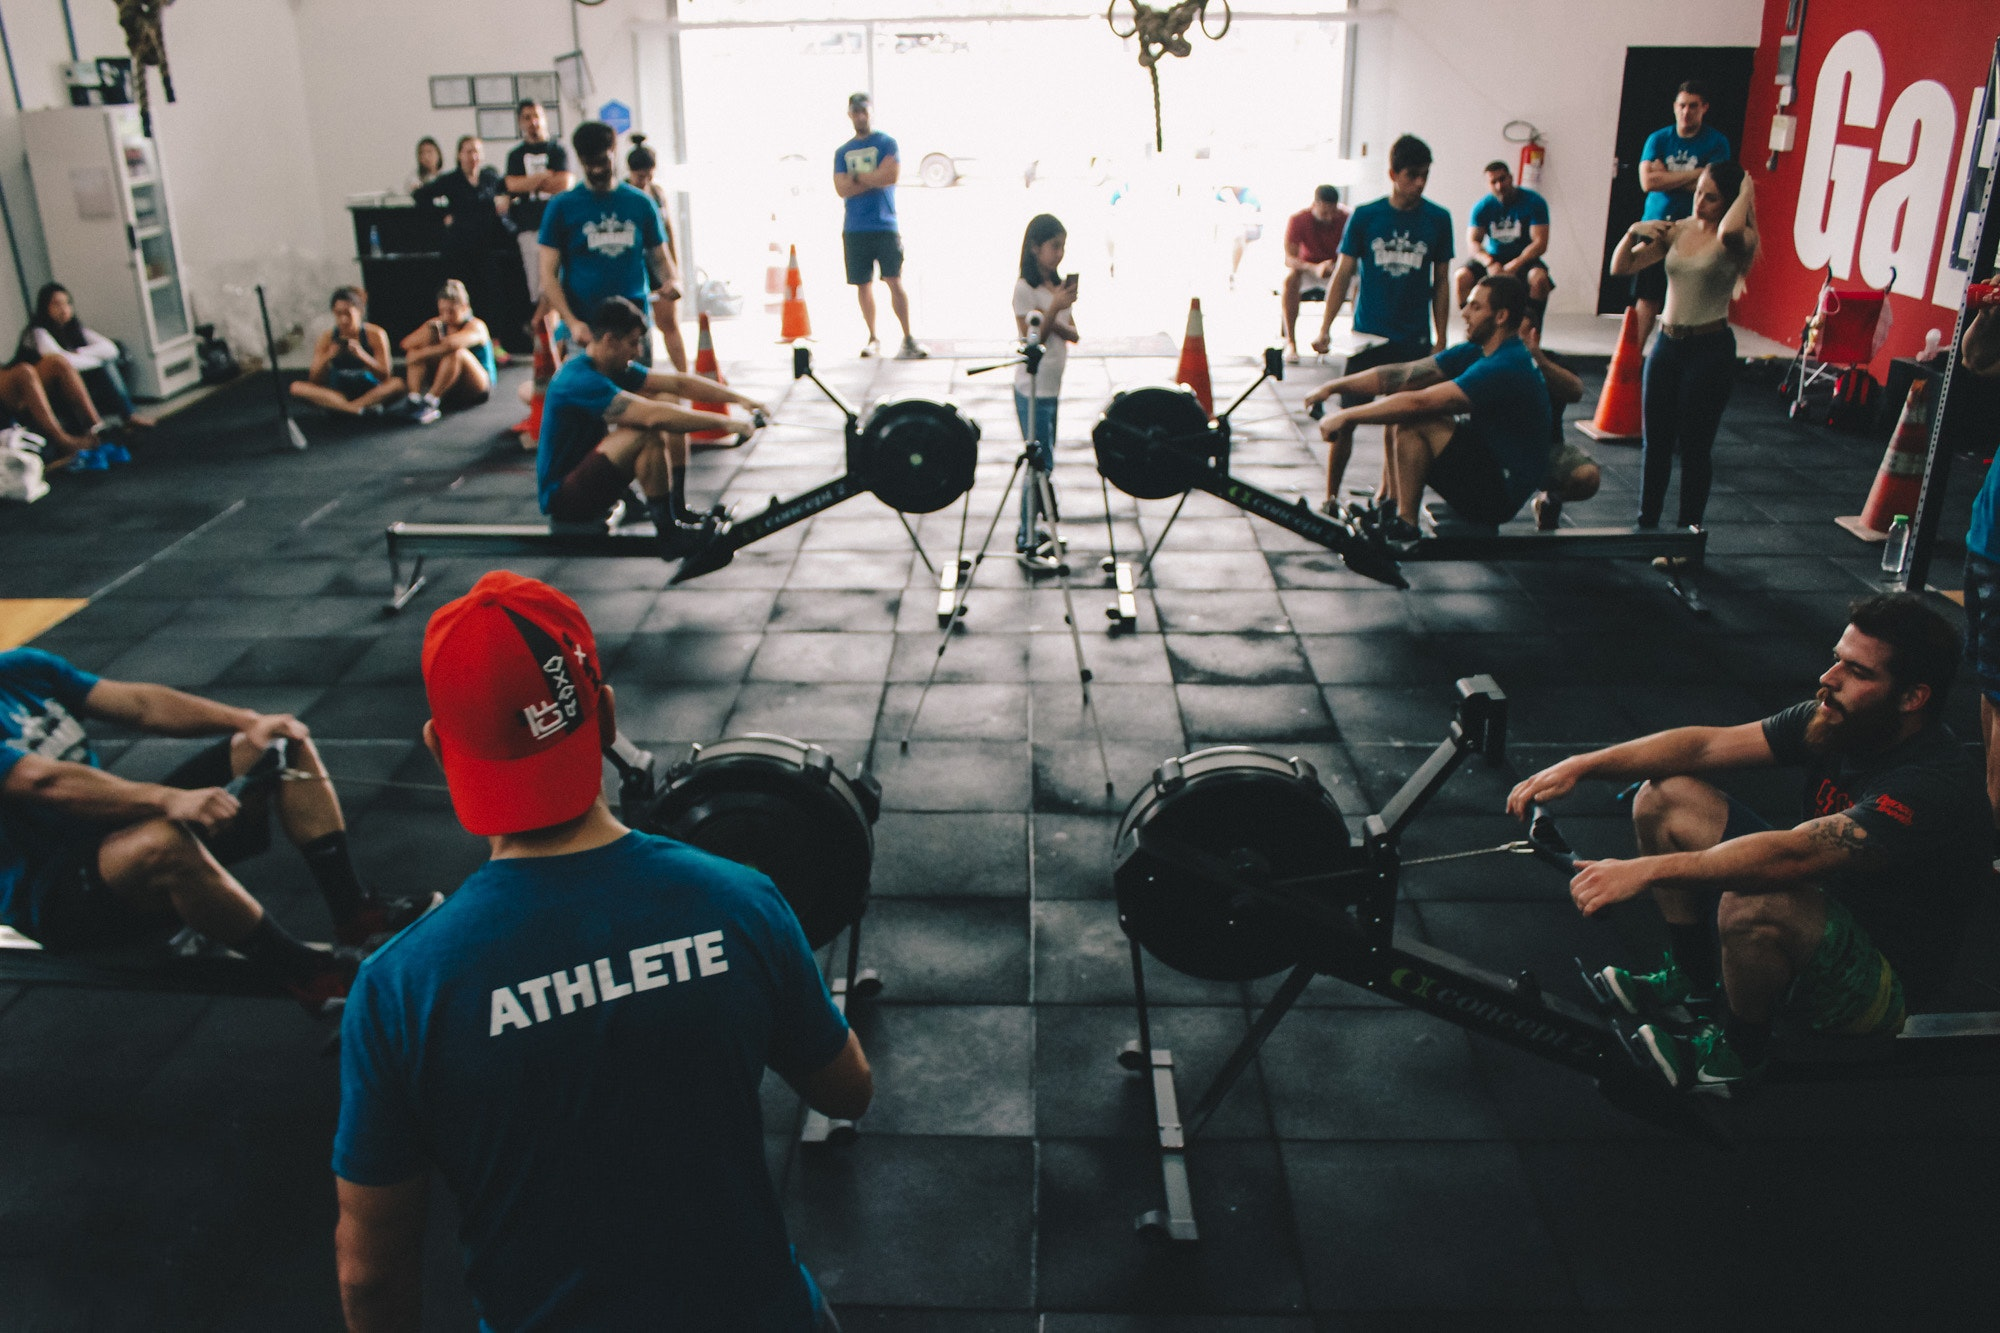 Group Exercise Classes Or One On One Training